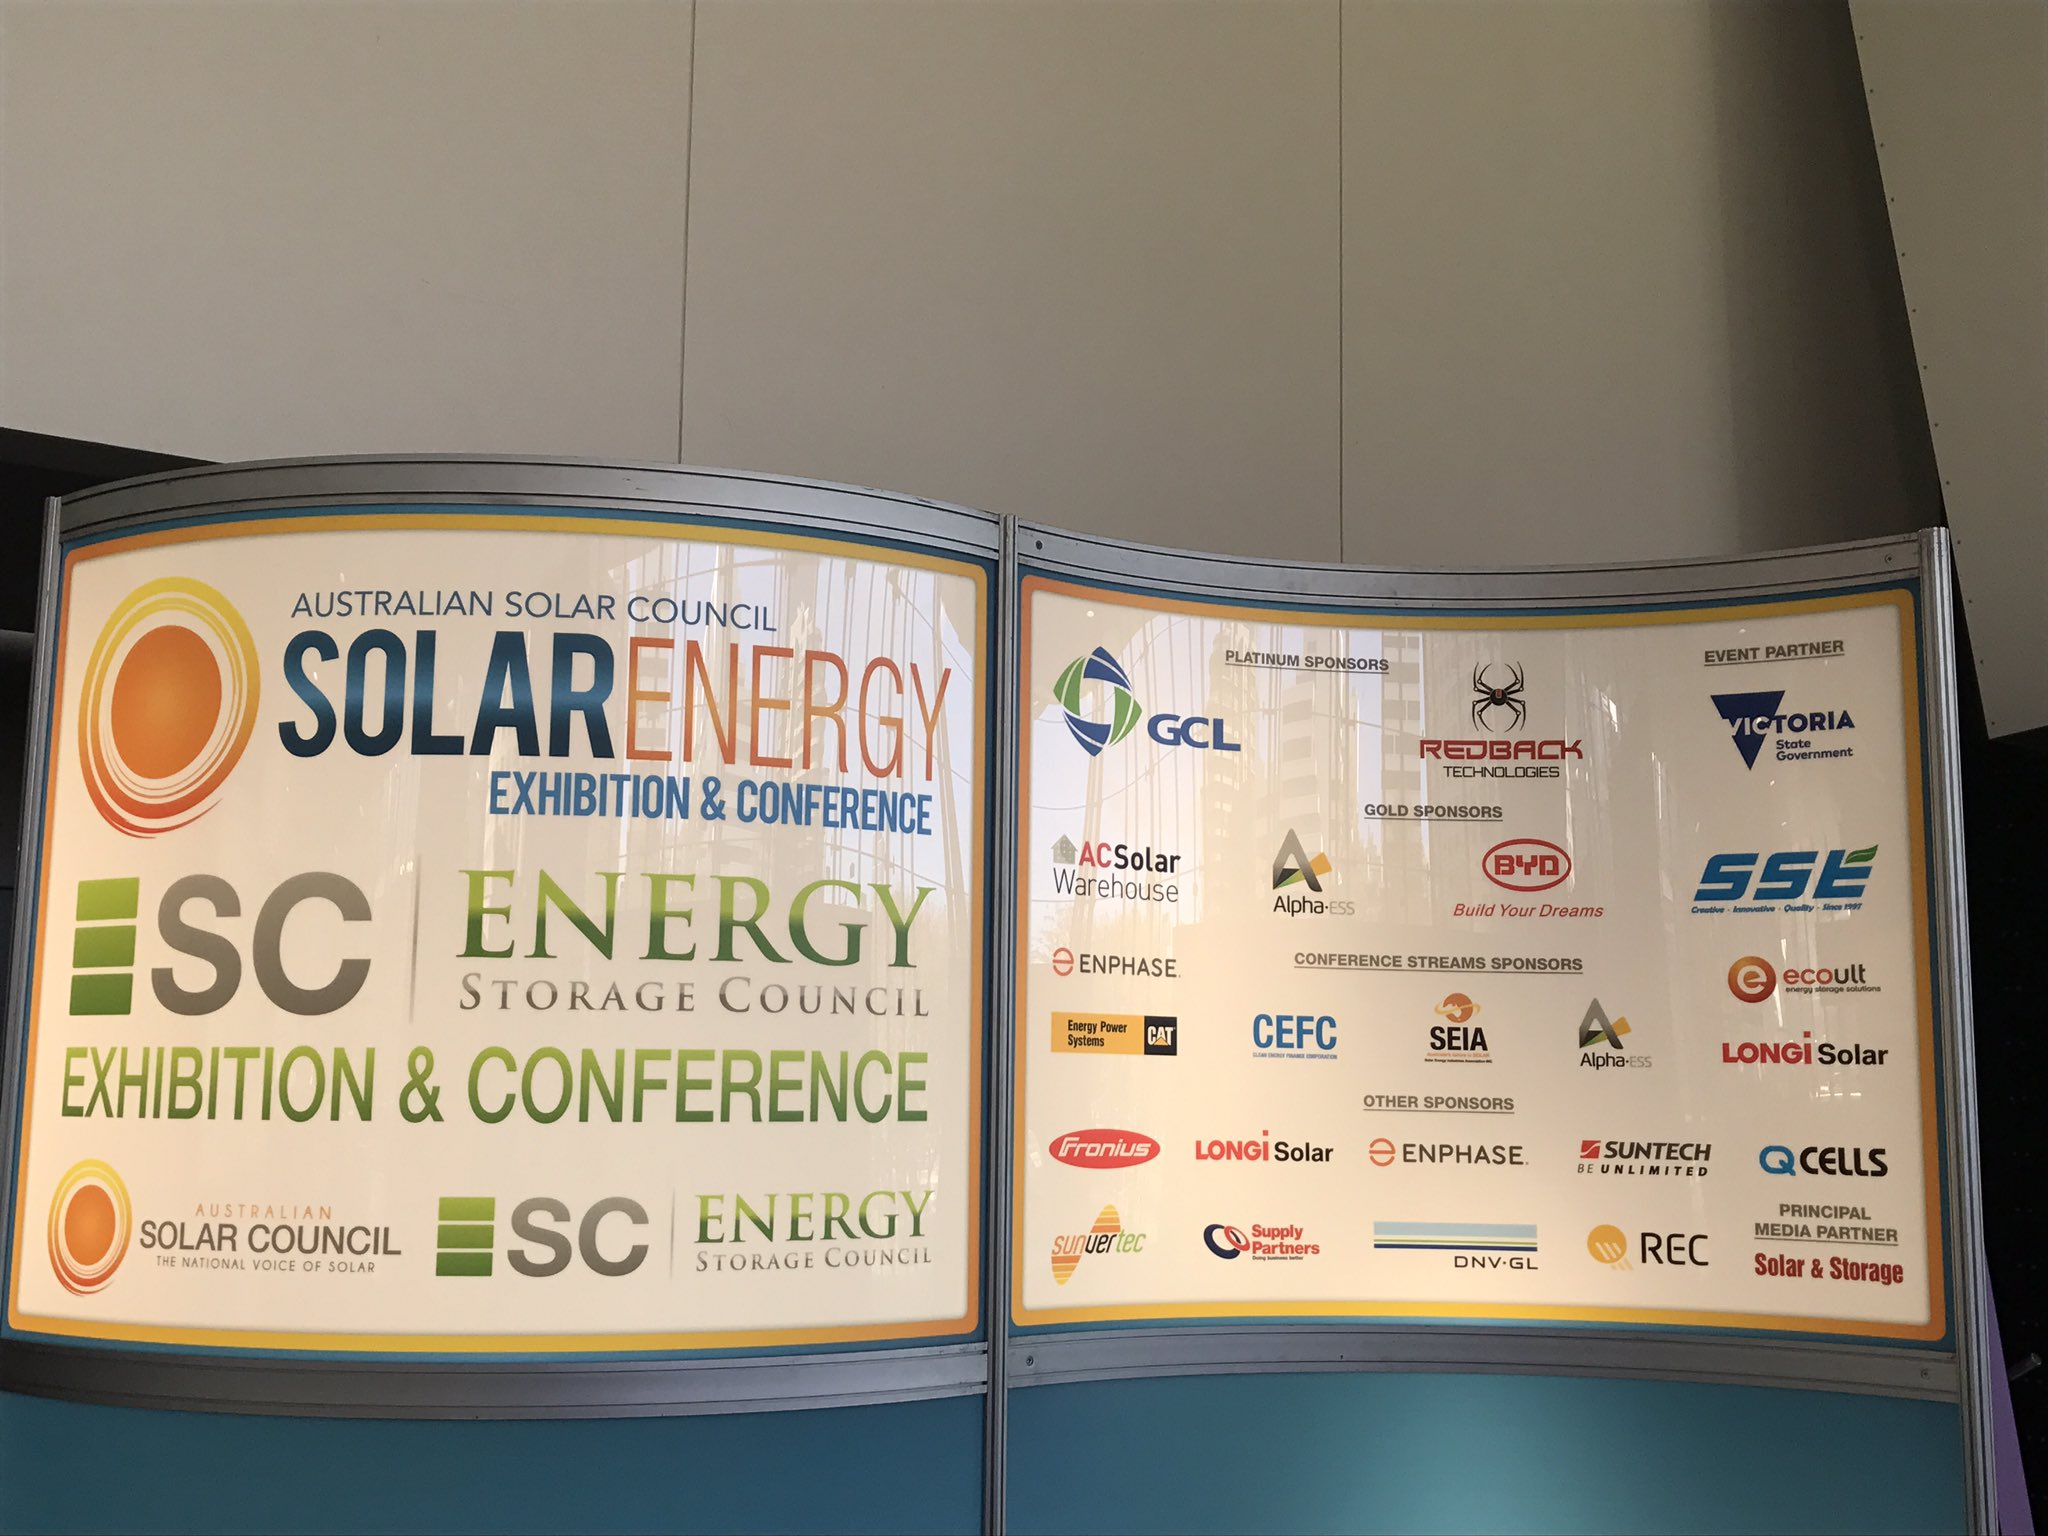 #SolarStorage2017 starts tomorrow. Great speakers, great solar & storage companies and products and free to attend. https://t.co/dXyI82ZDt1 https://t.co/DNtRRP6Kw0